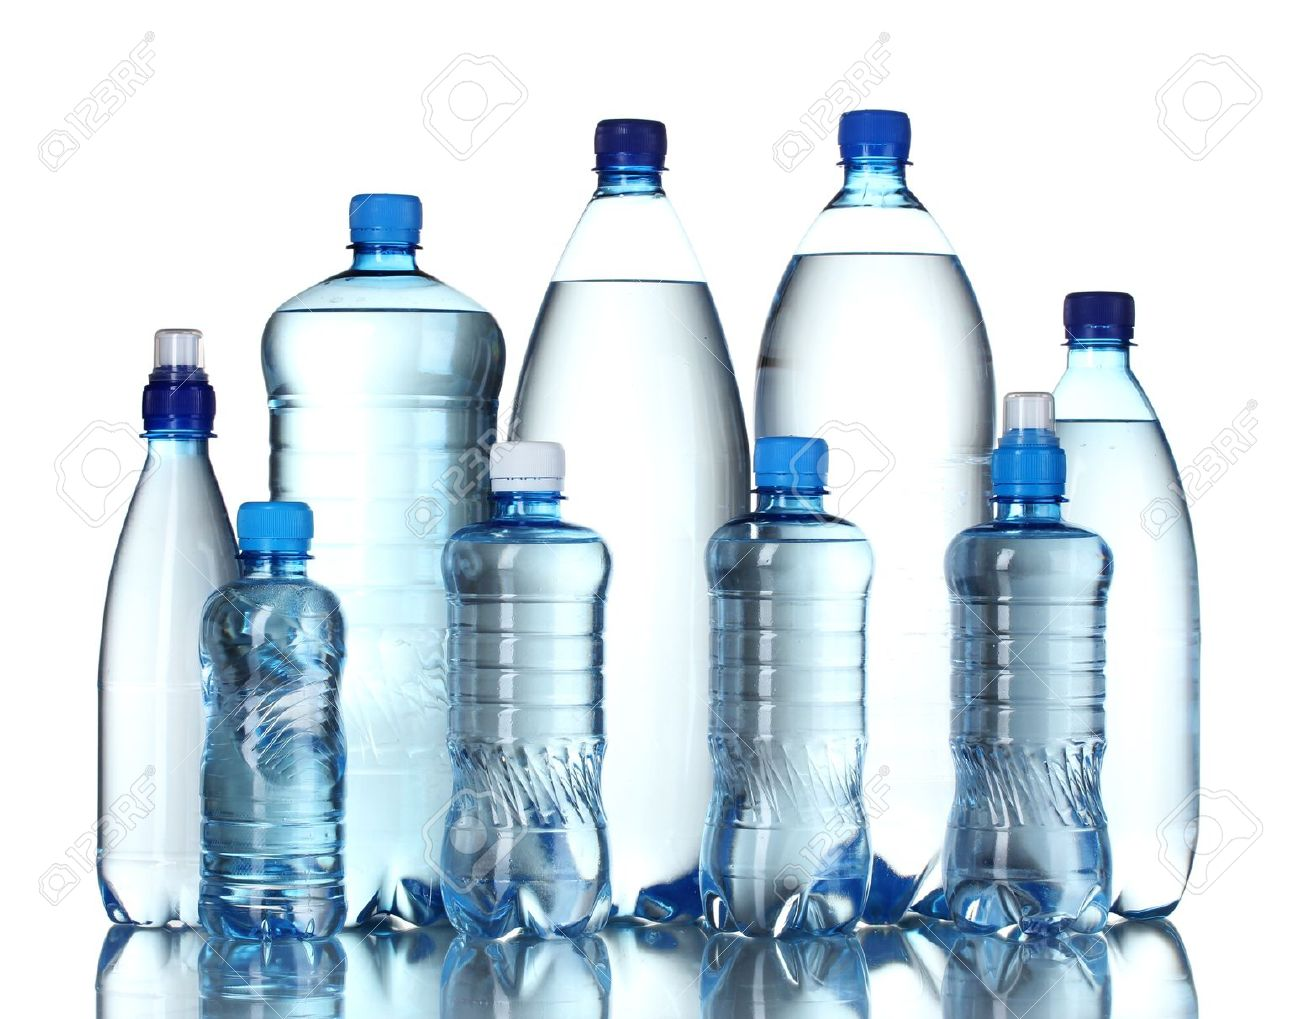 How can one use promotional water bottles?